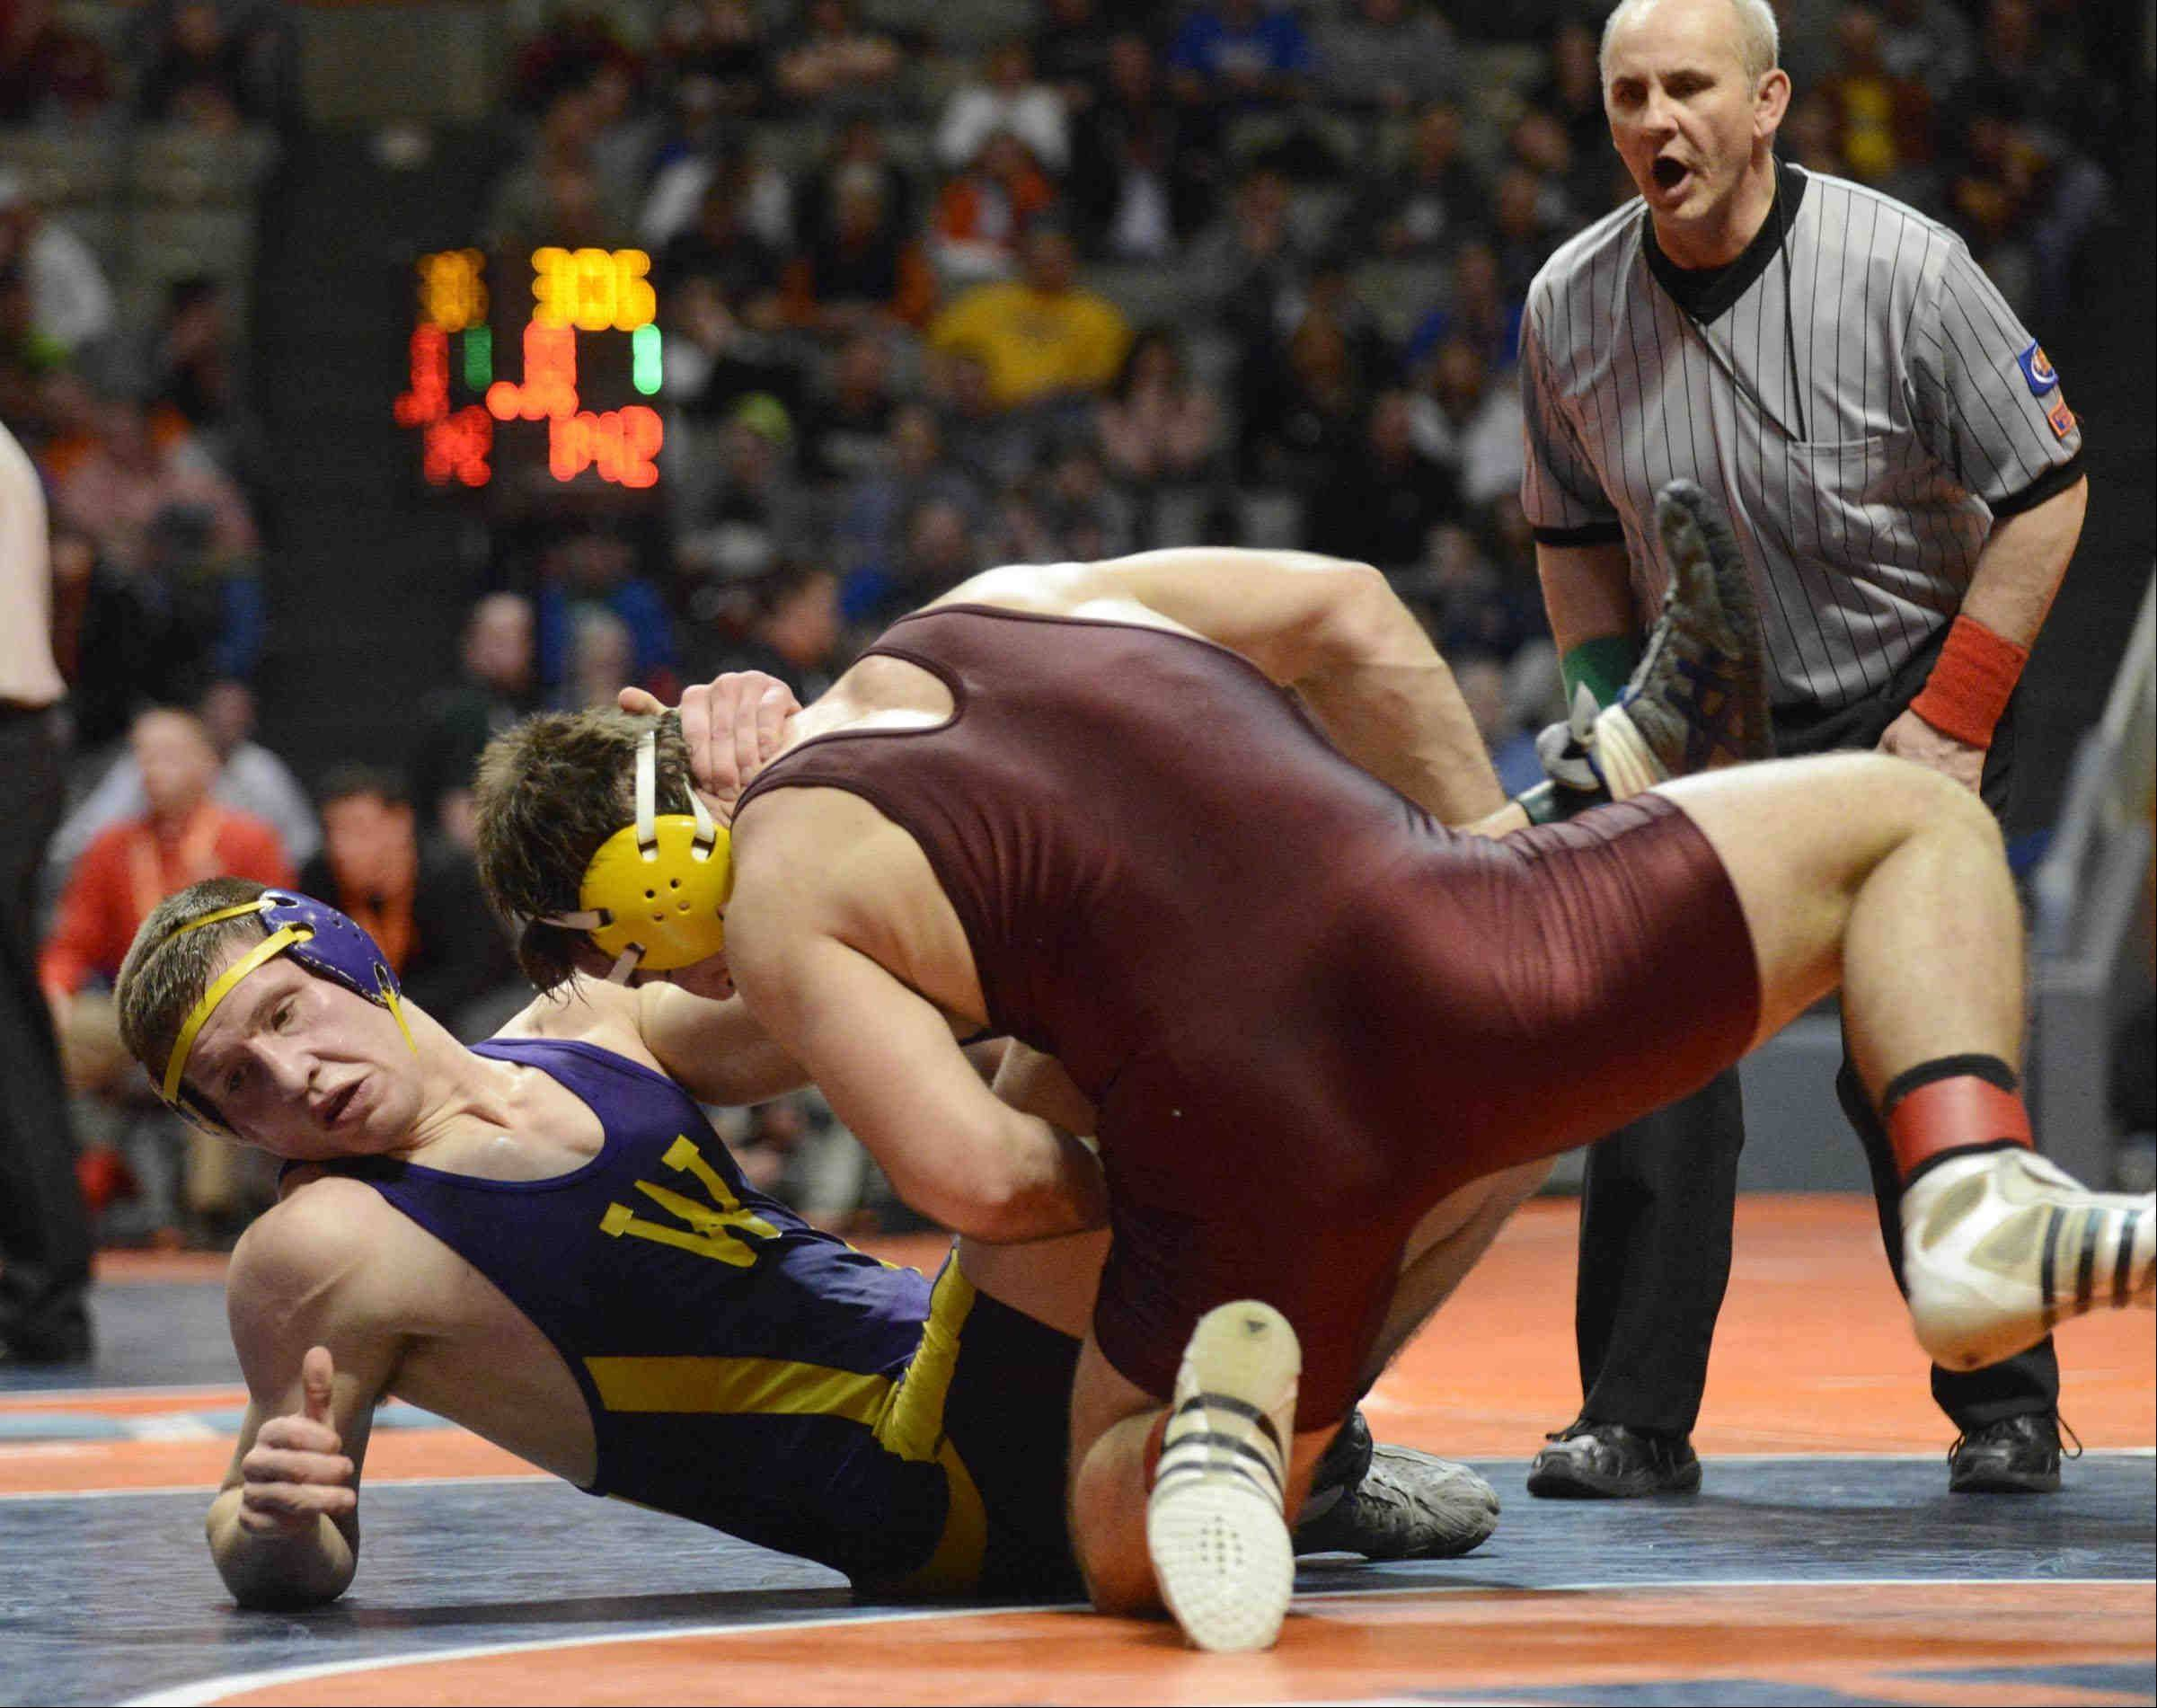 John Starks/jstarks@dailyherald.com Wauconda's Nate Magiera takes a loss to East Peoria's Luca Joseph in the 220 pound Class 2A match Friday in the IHSA semifinal wrestling match at Assembly Hall in Champaign.